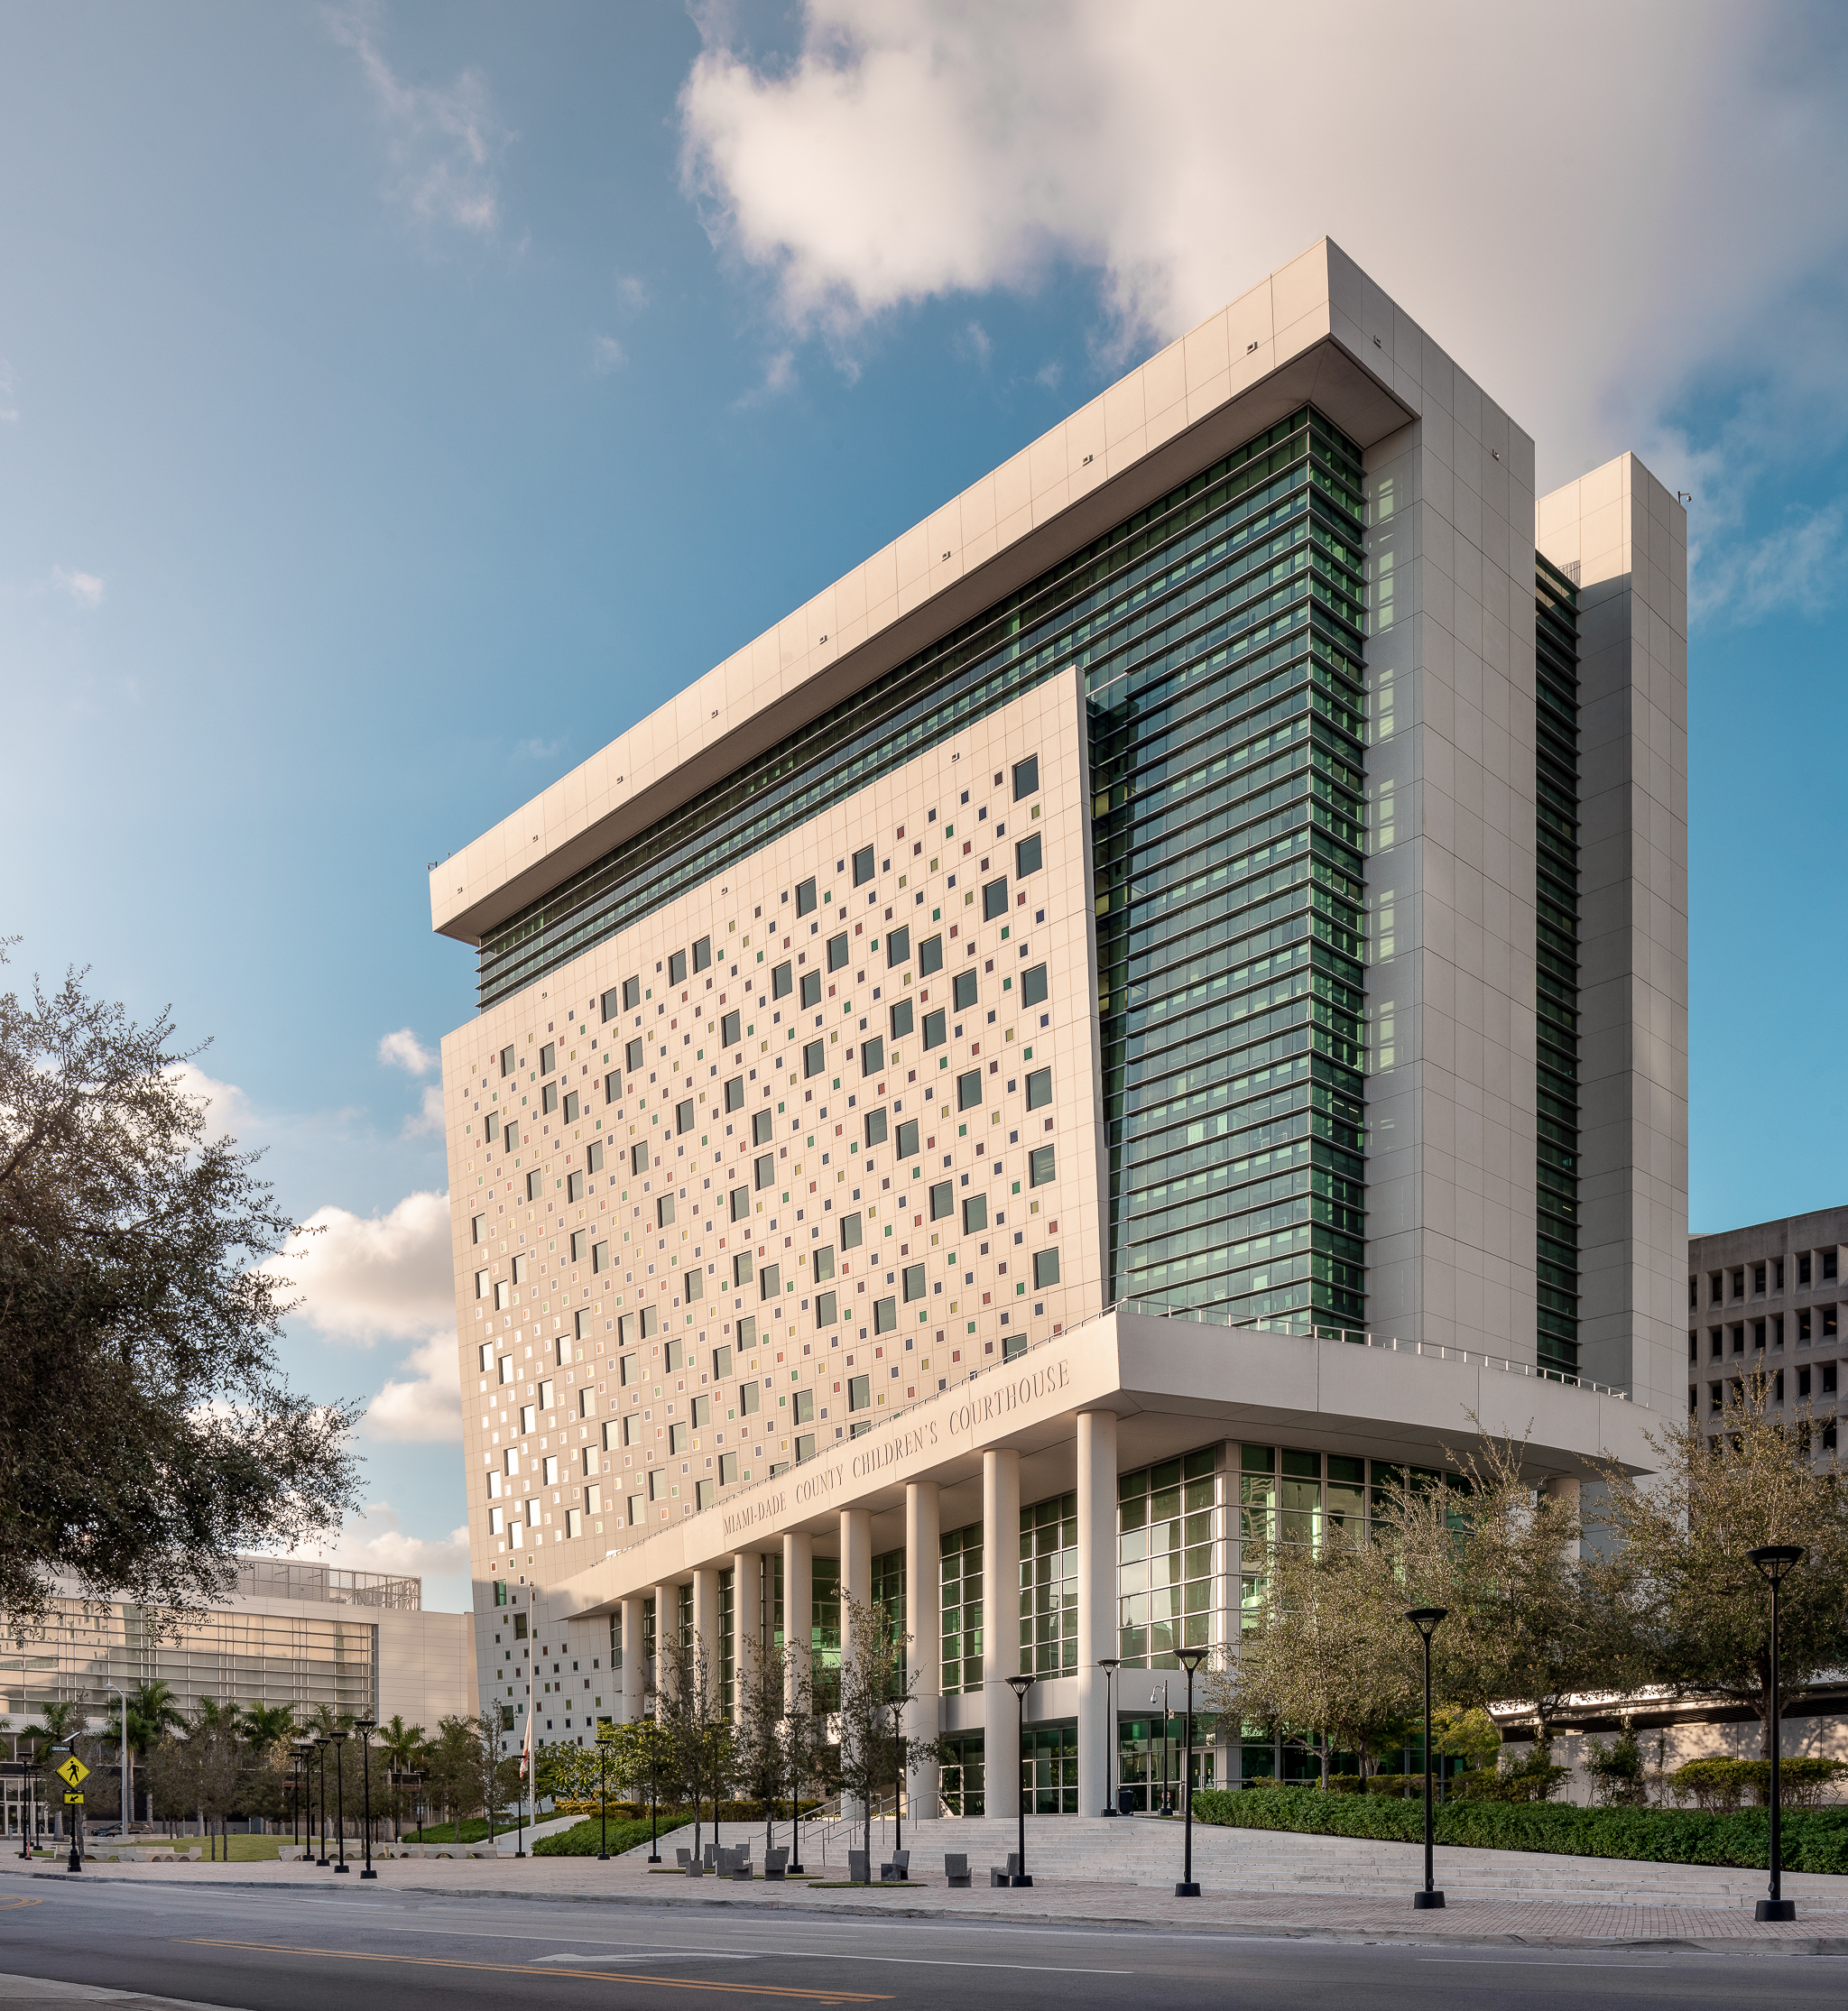 Miami-Dade County Children's Courthouse